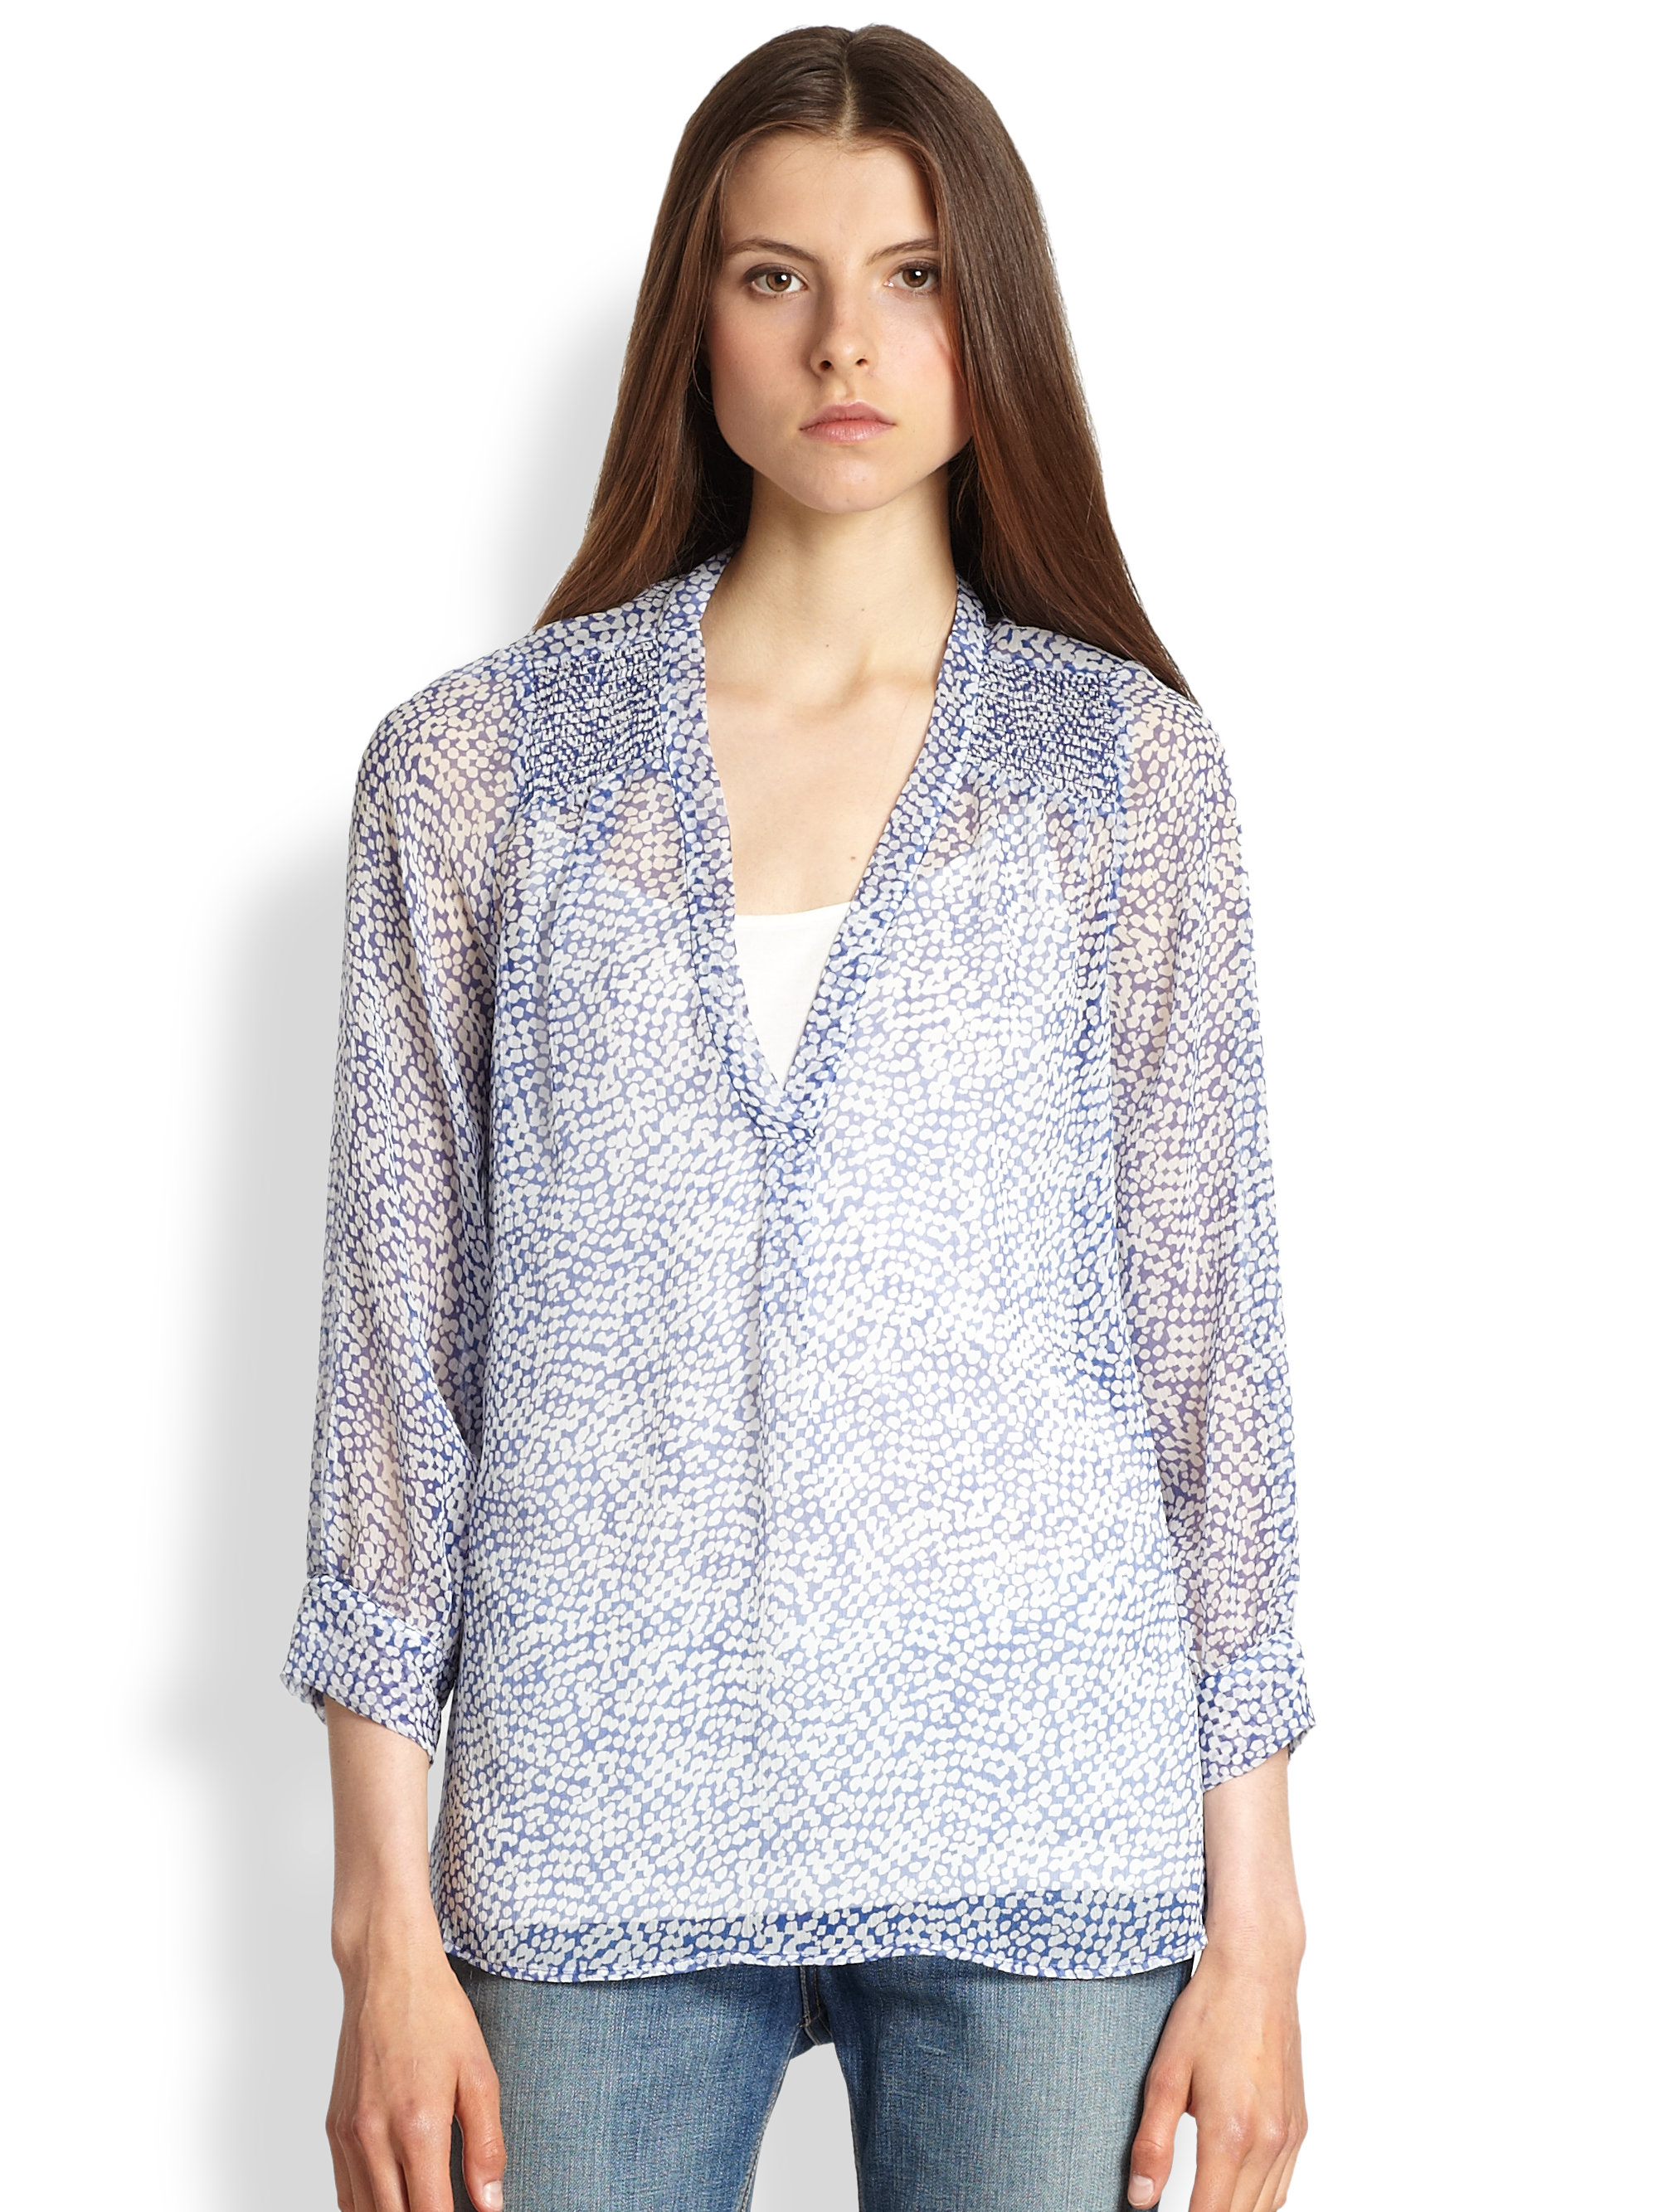 2abc36984effca Lyst - Joie Aceline Printed Silk Blouse in Blue